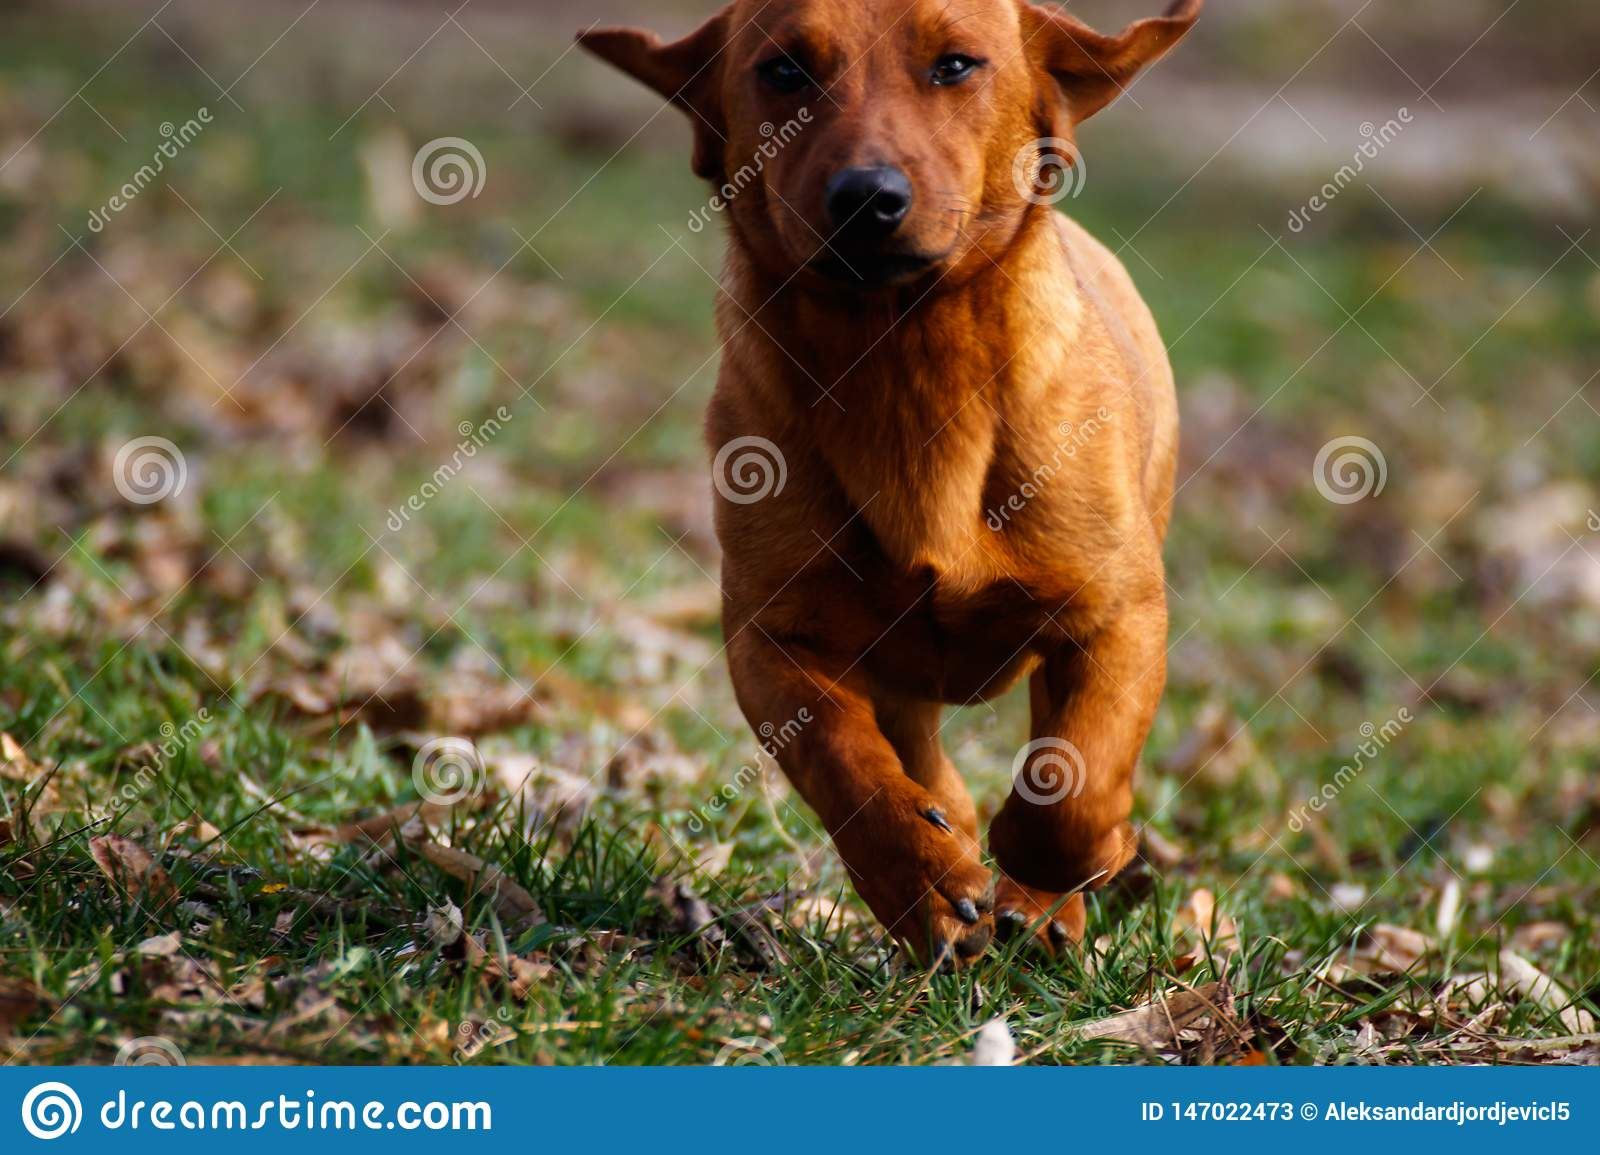 Dog running in the field of grass, dog caught in action